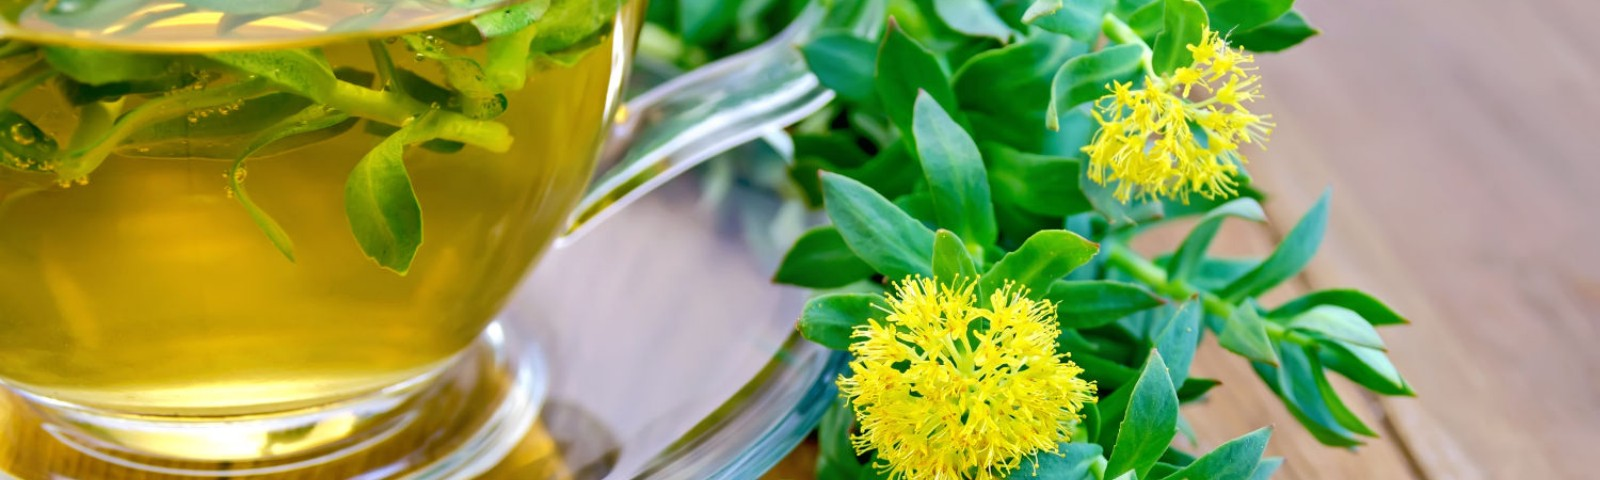 Rhodiola Rosea Benefits for Weight Loss, Anxiety and Depression